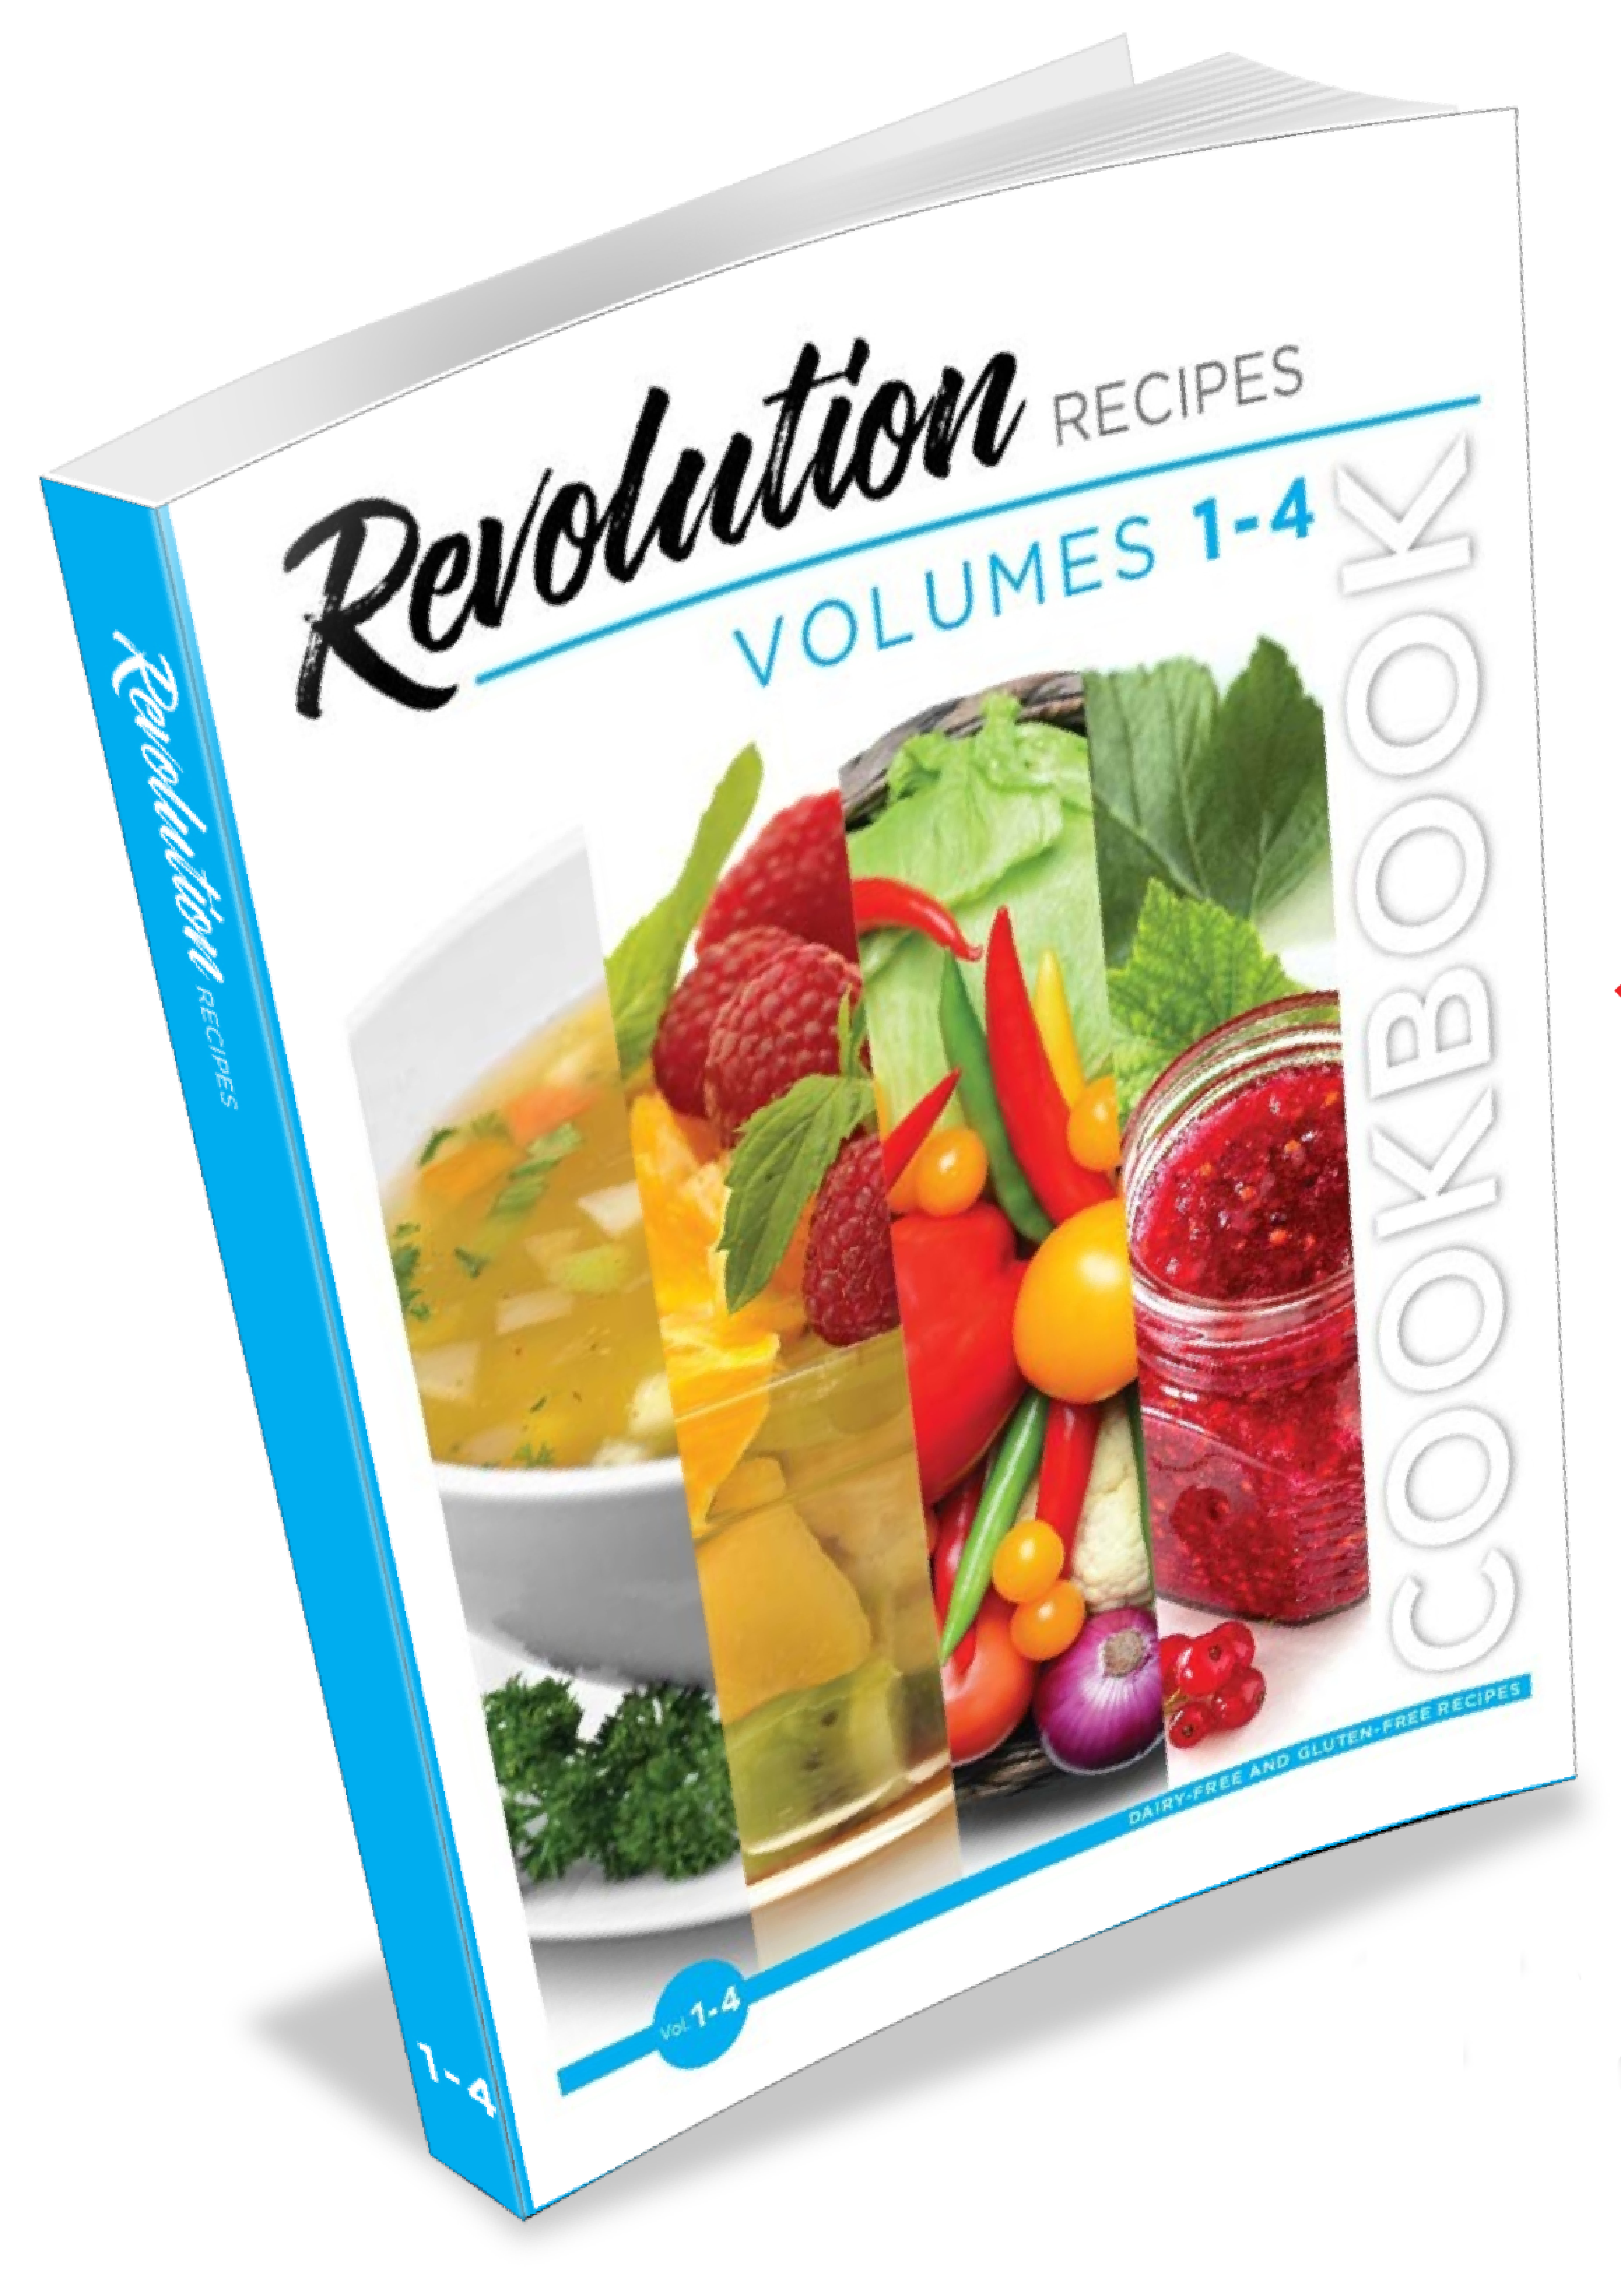 Revolution Recipes Cookbook Vol 1-4